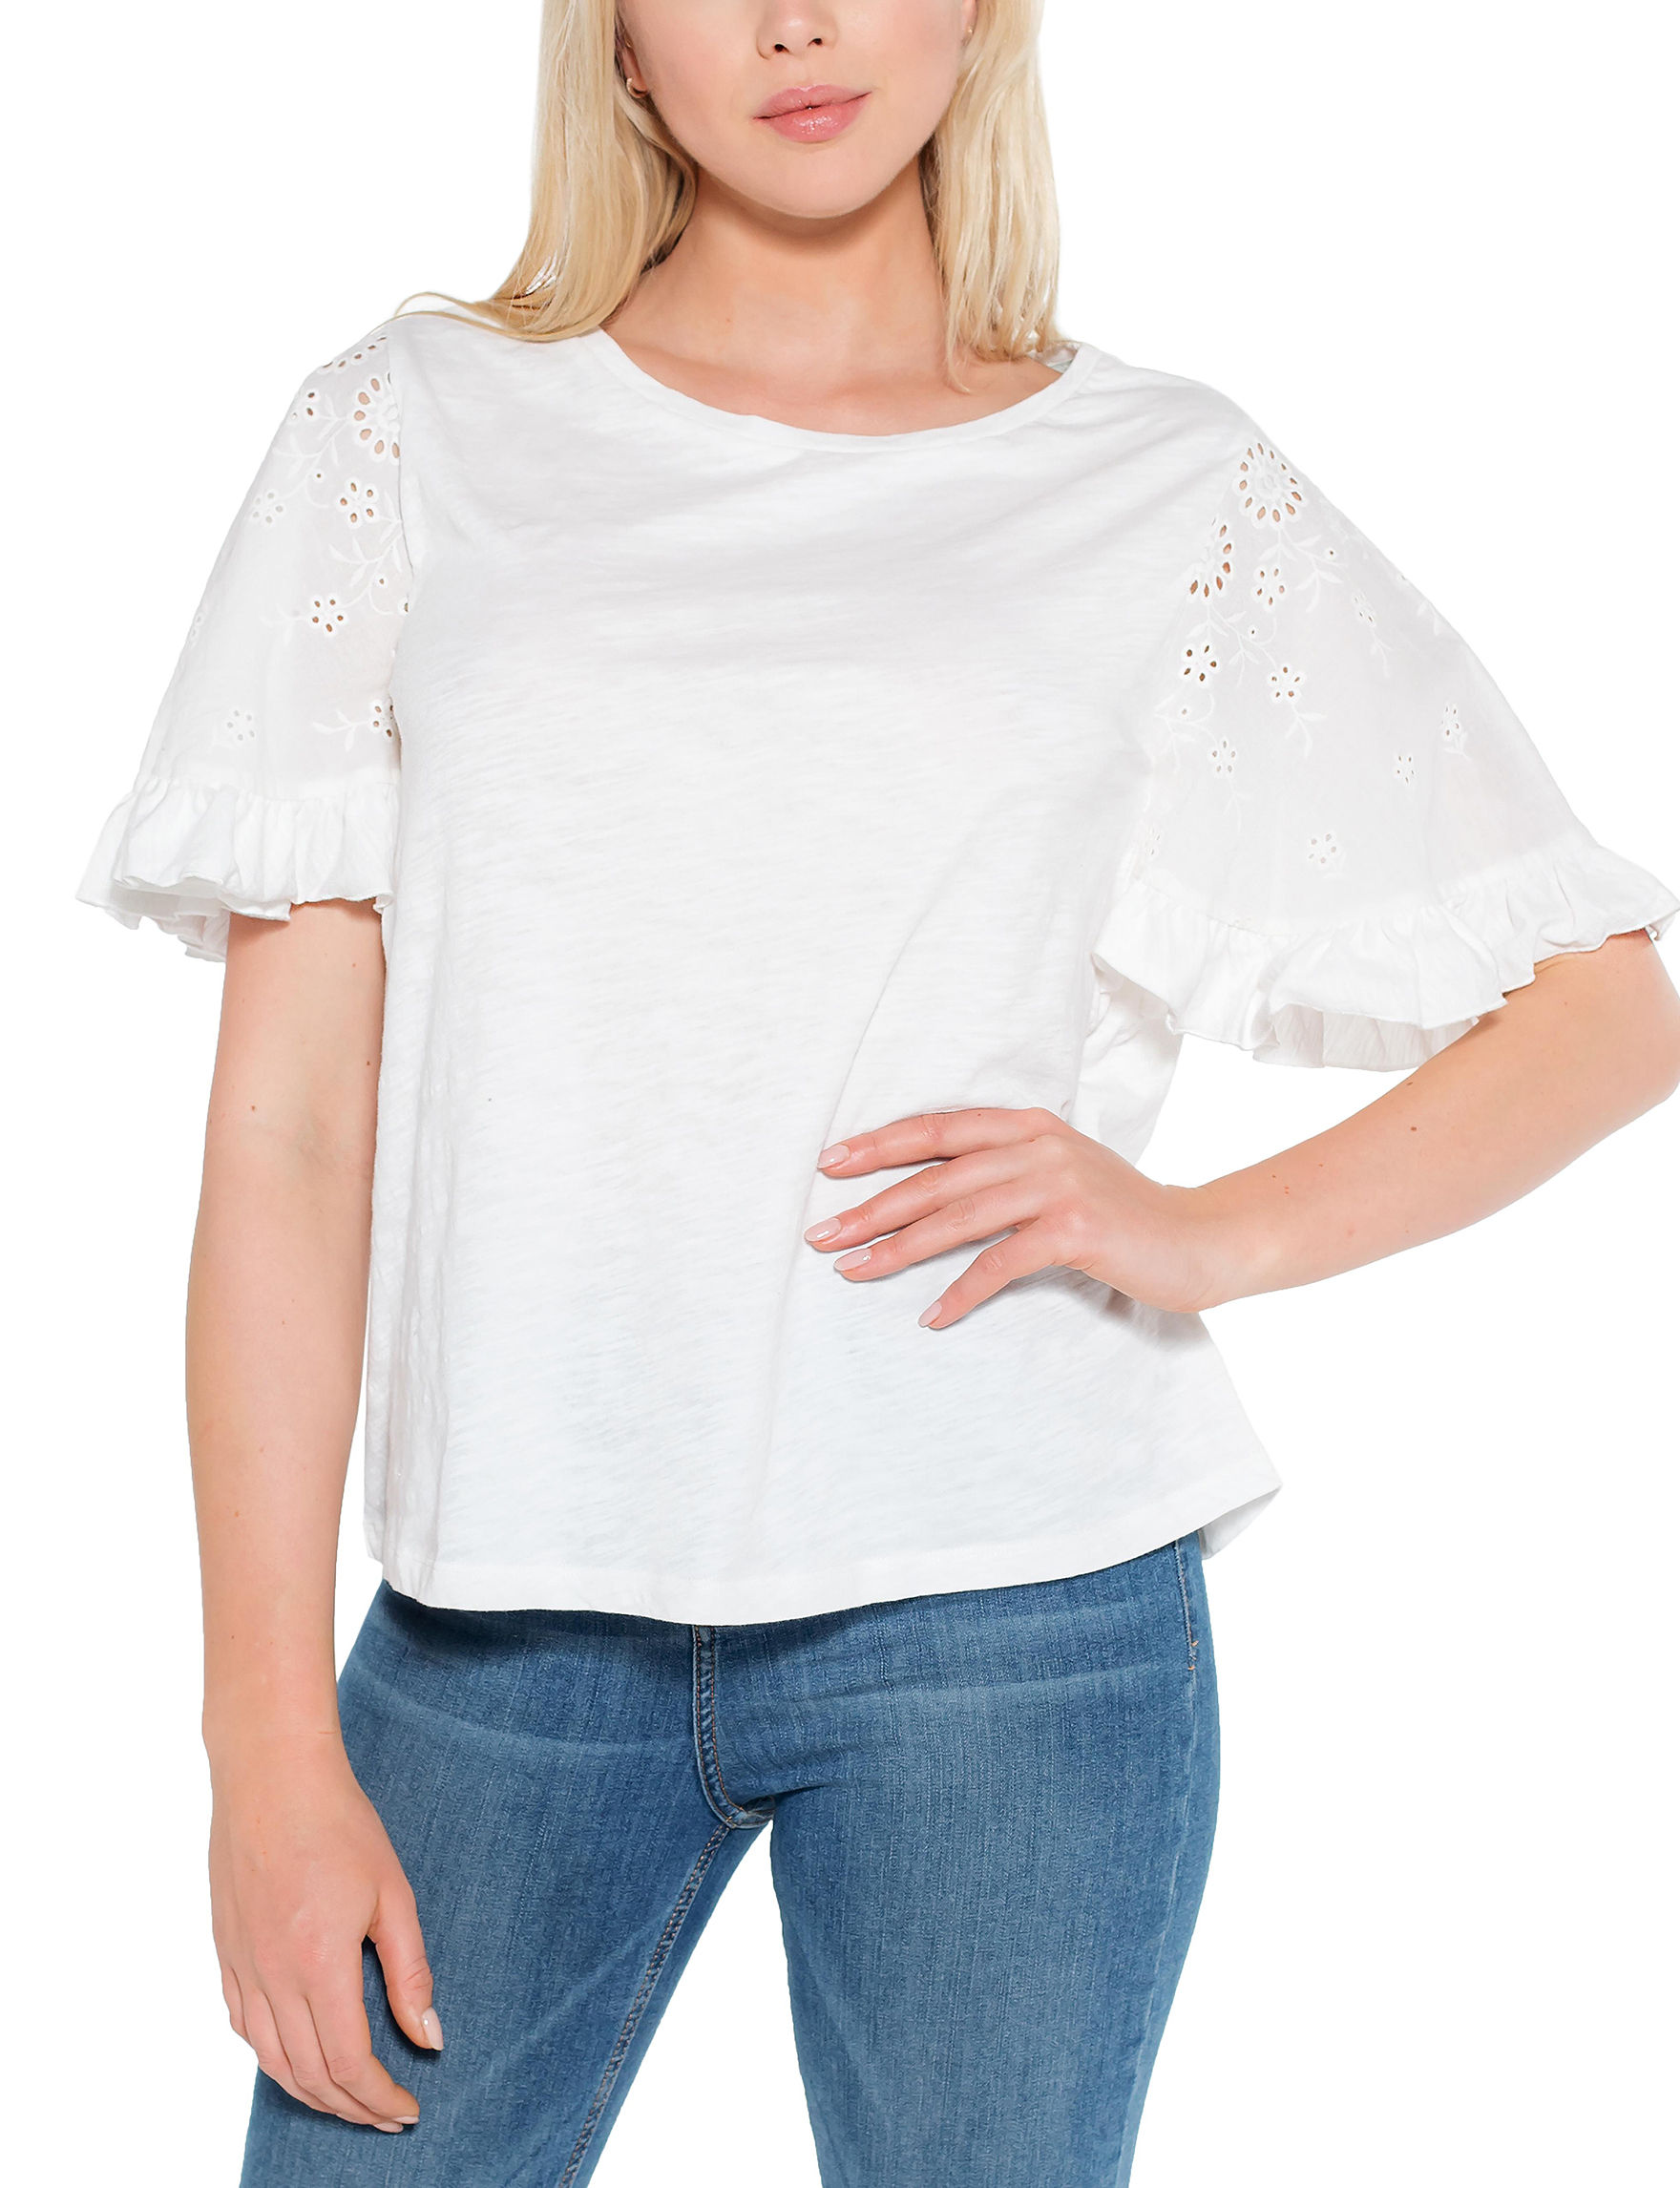 C + J Collections White Shirts & Blouses